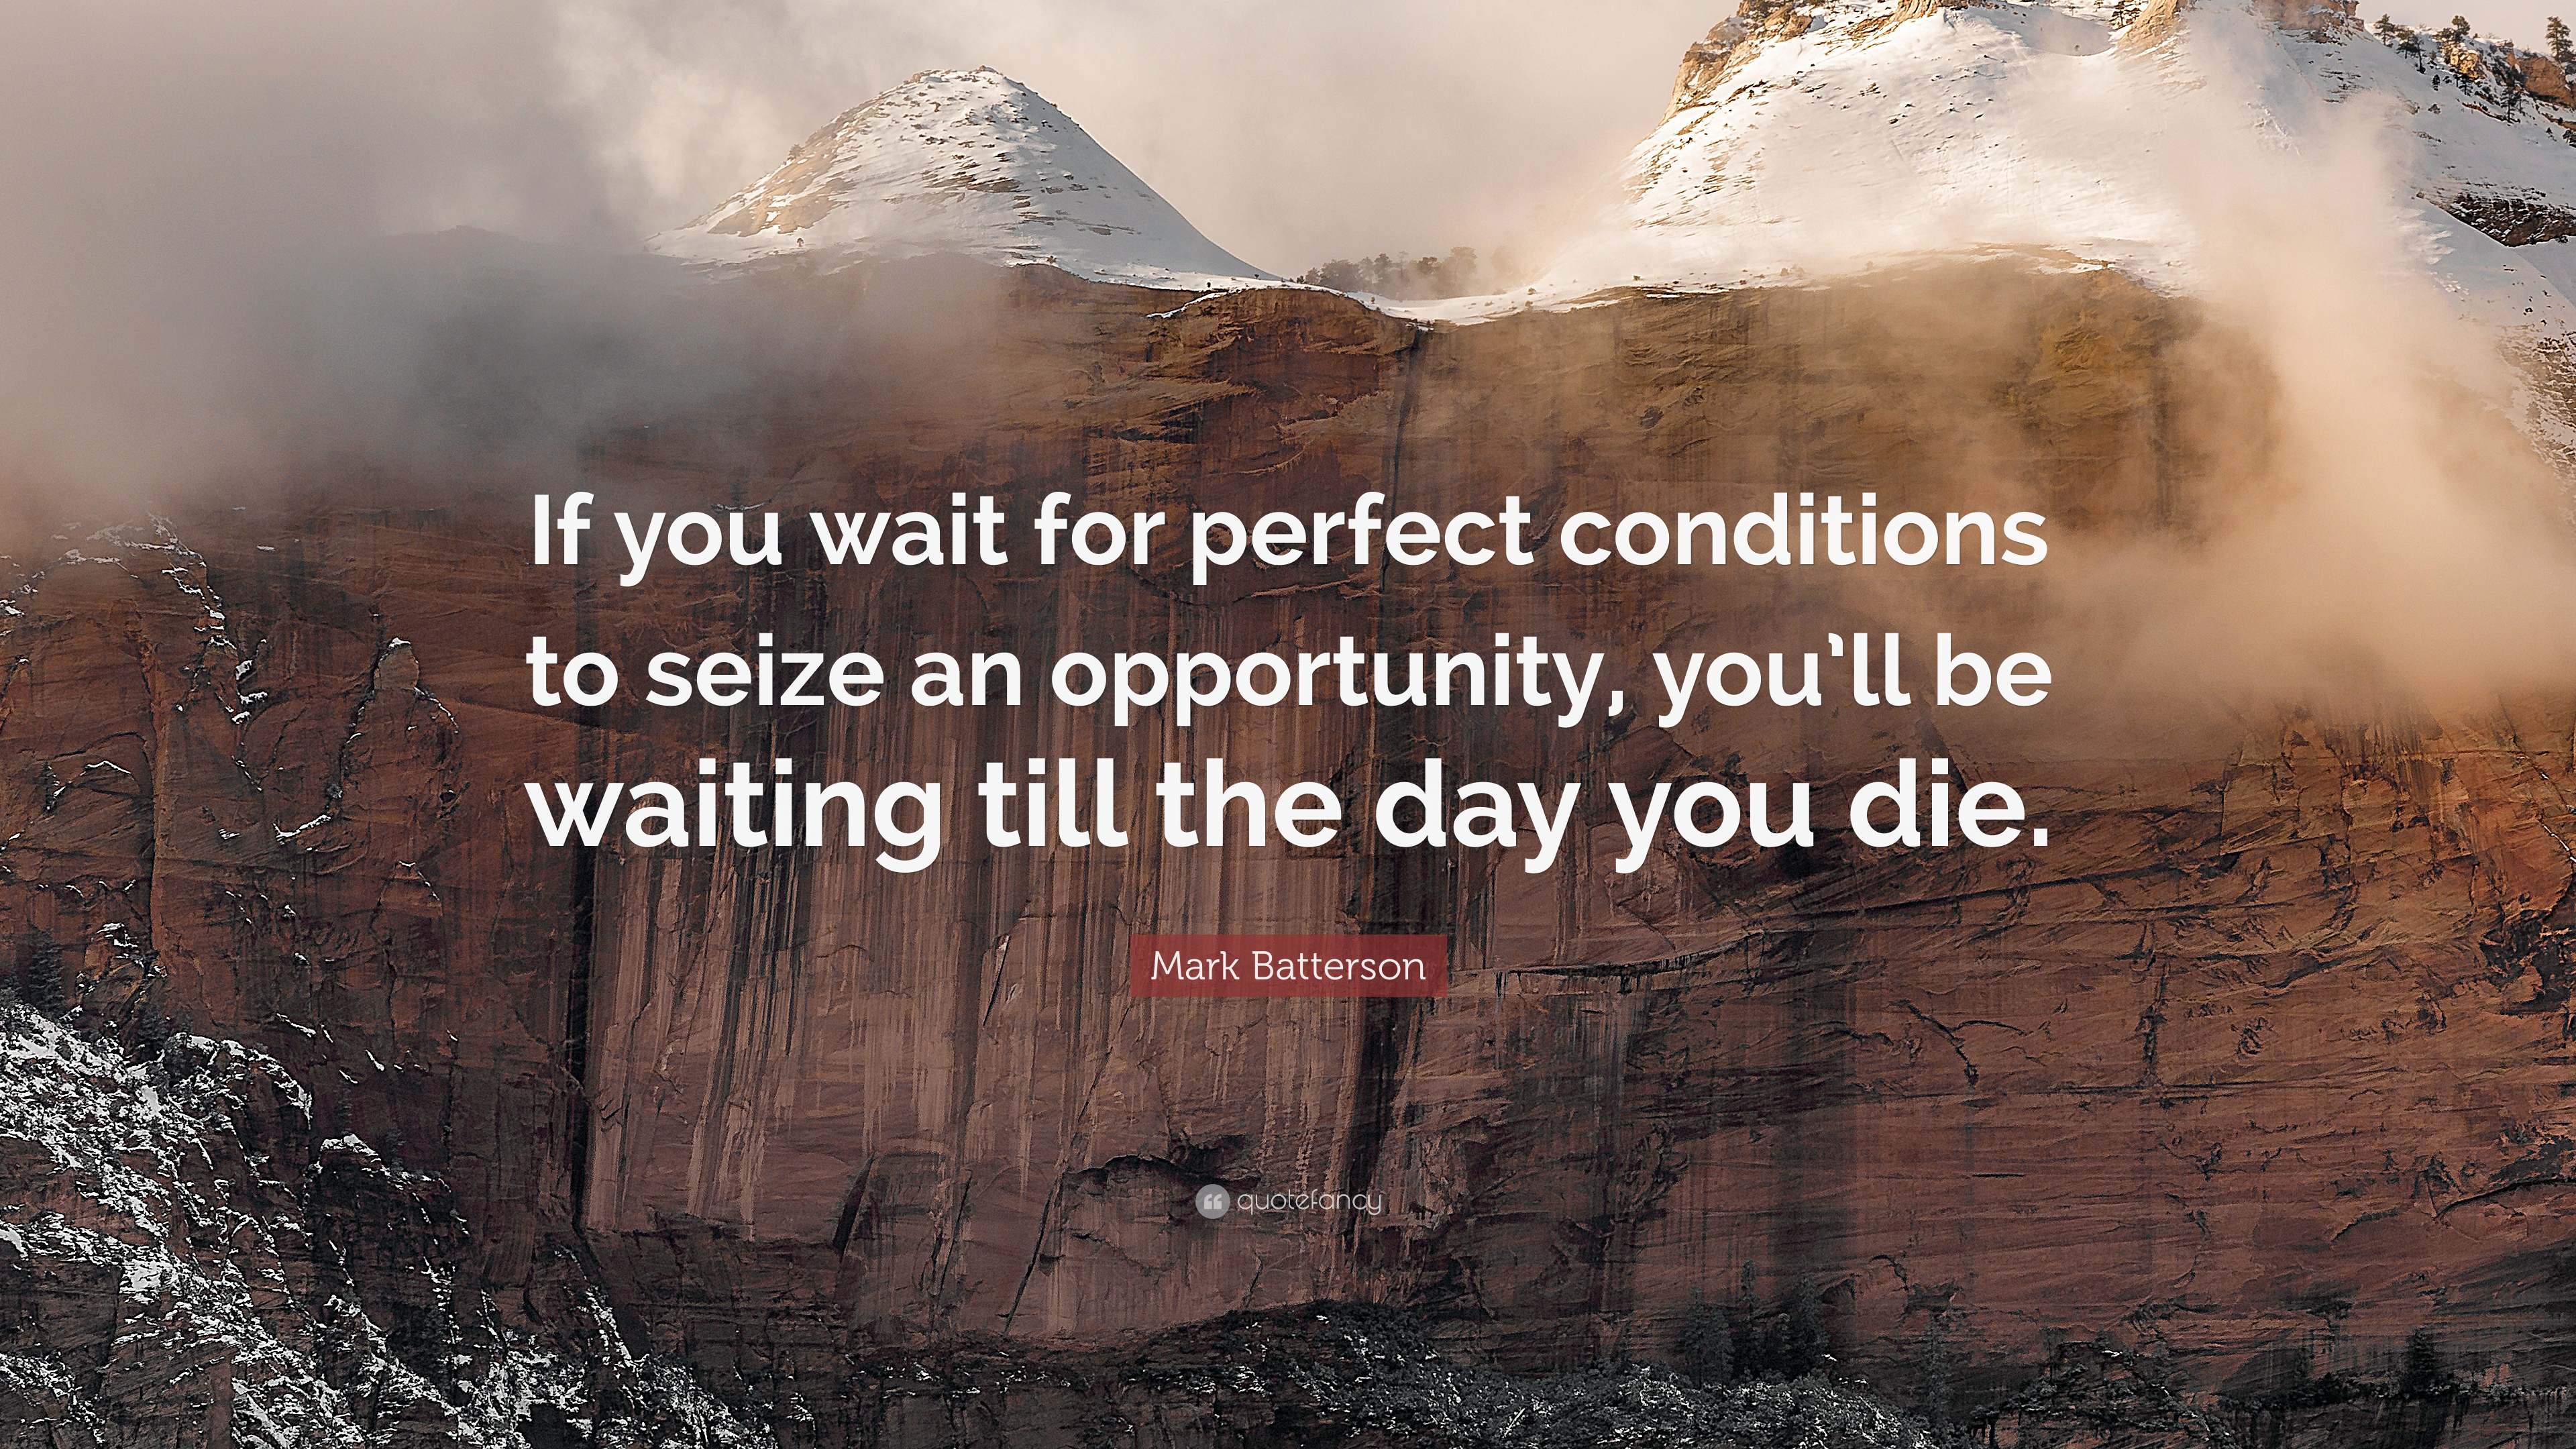 Mark Batterson Quote If You Wait For Perfect Conditions To Seize